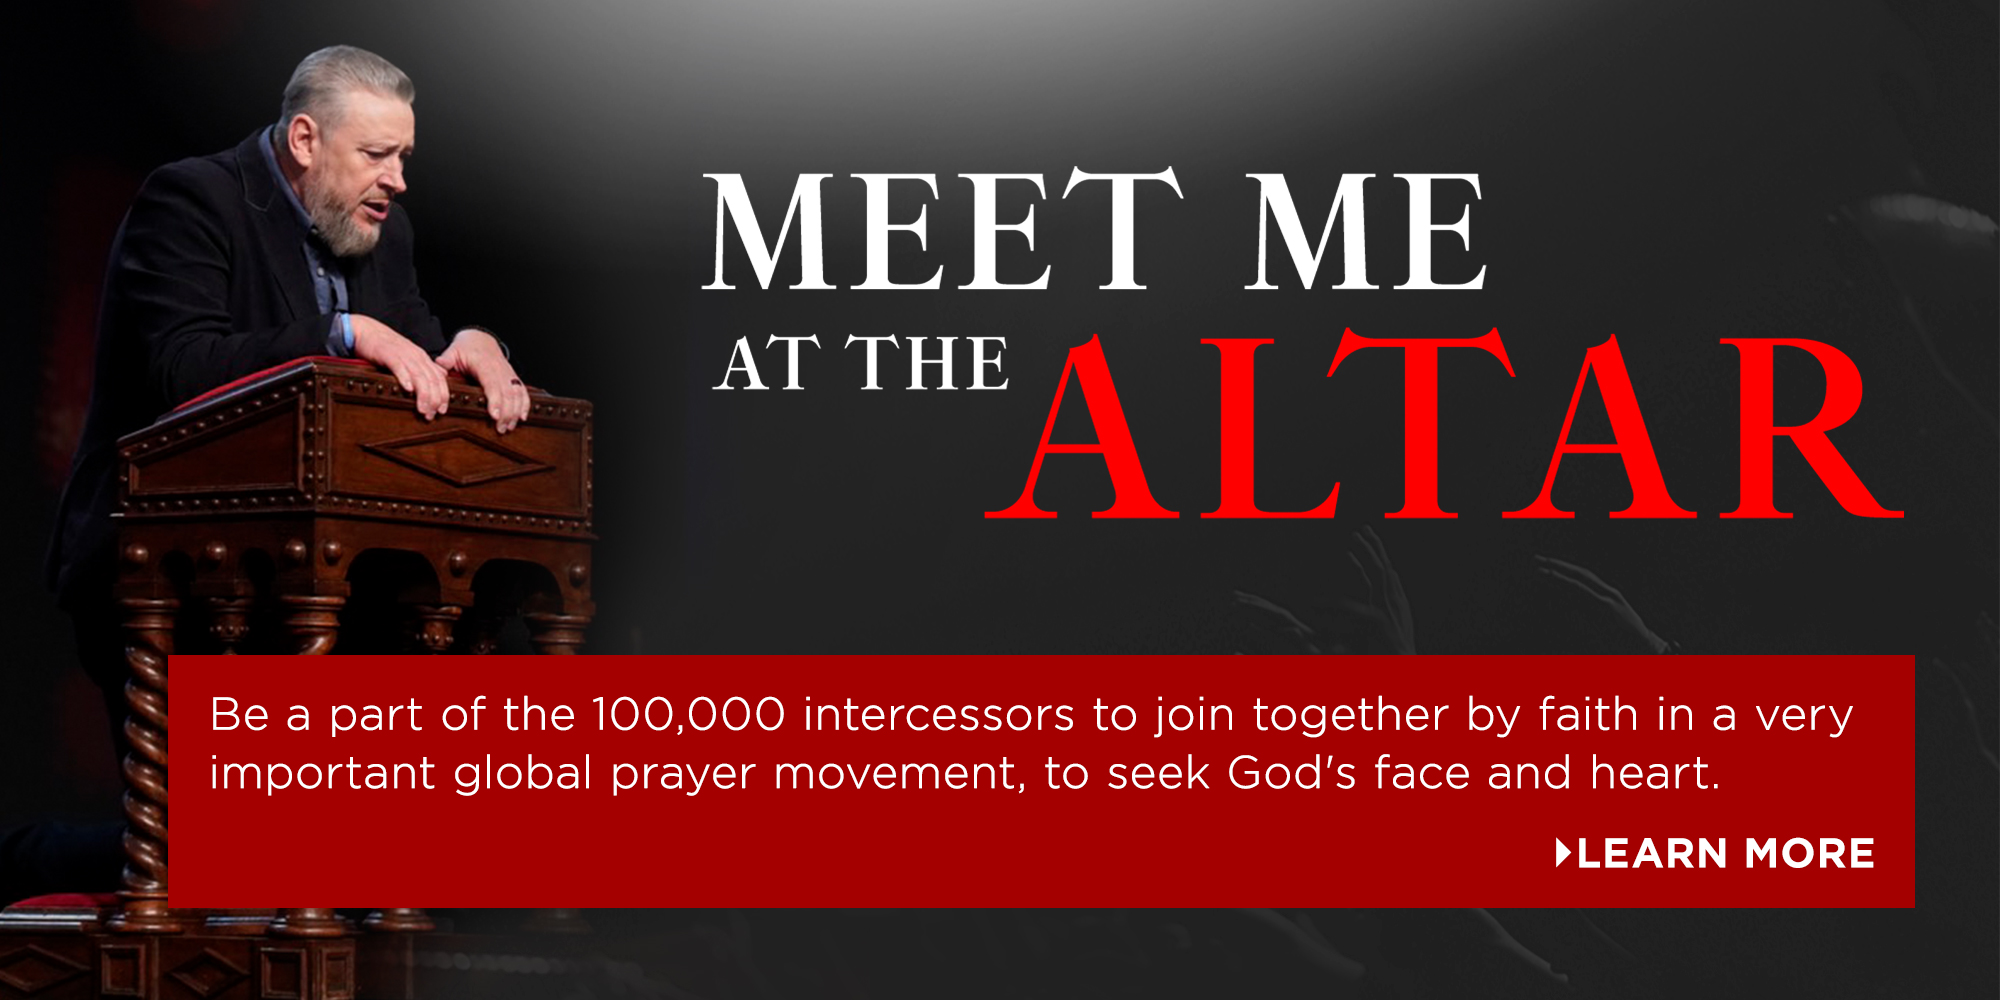 Meet Me at the Alter Be apart of the 100,000 Intercessors to join together by faith in a very important global prayer movement, to seek God's face and heart.